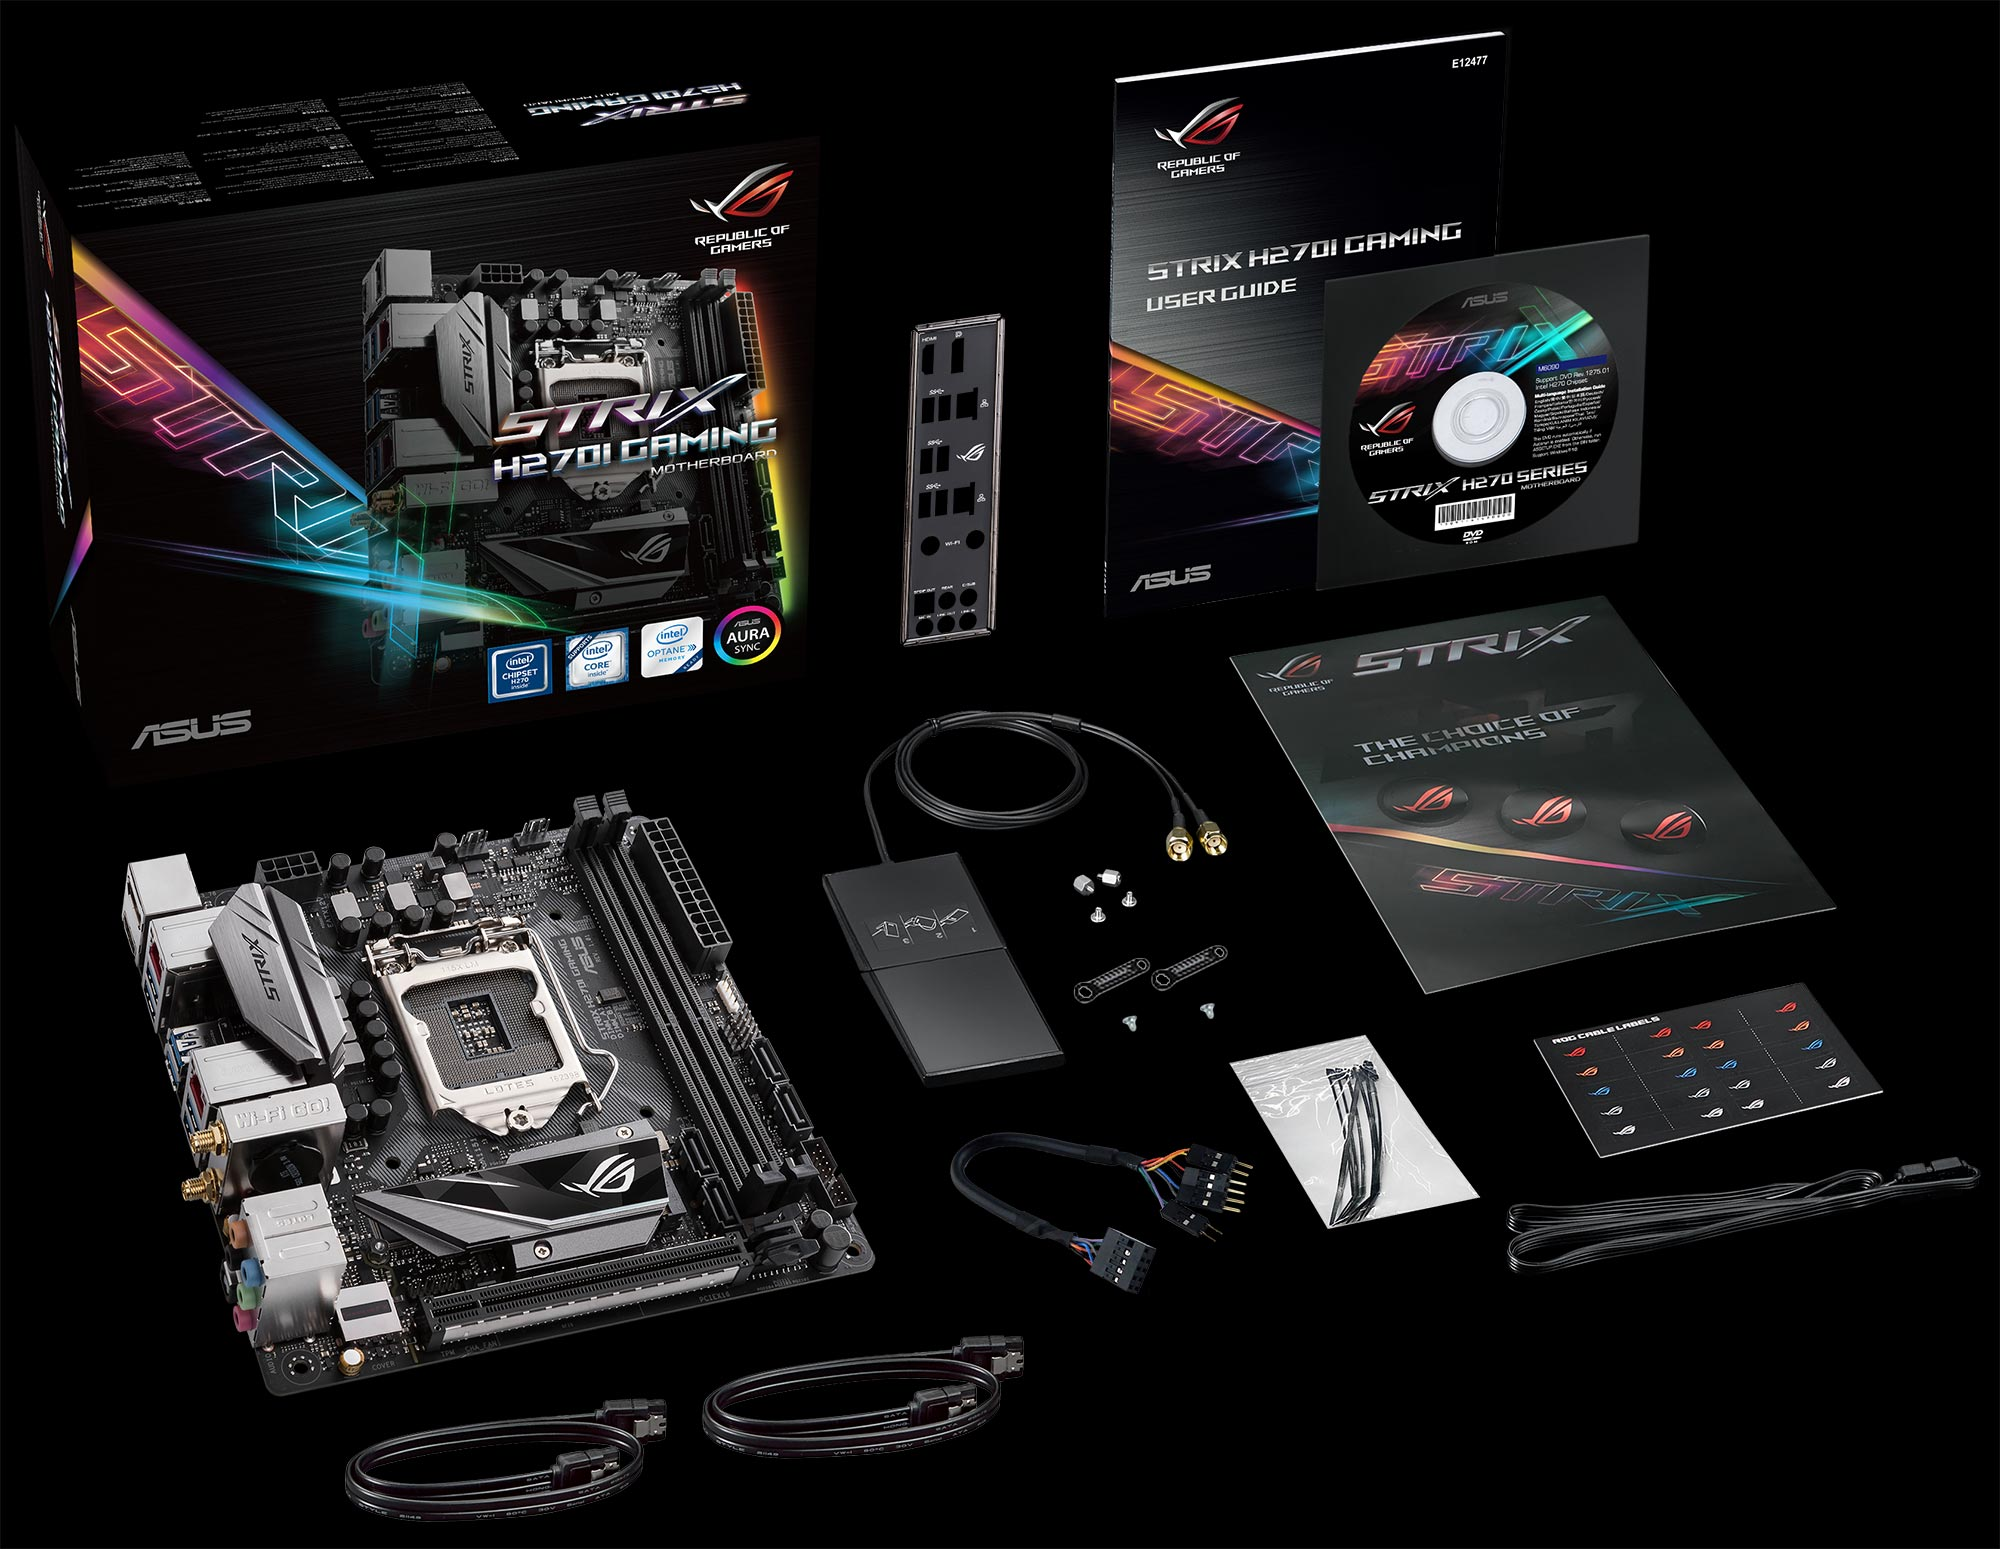 Shrink your PC with the ROG Strix H270I and B250I Gaming Mini-ITX motherboards | ROG - Republic ...